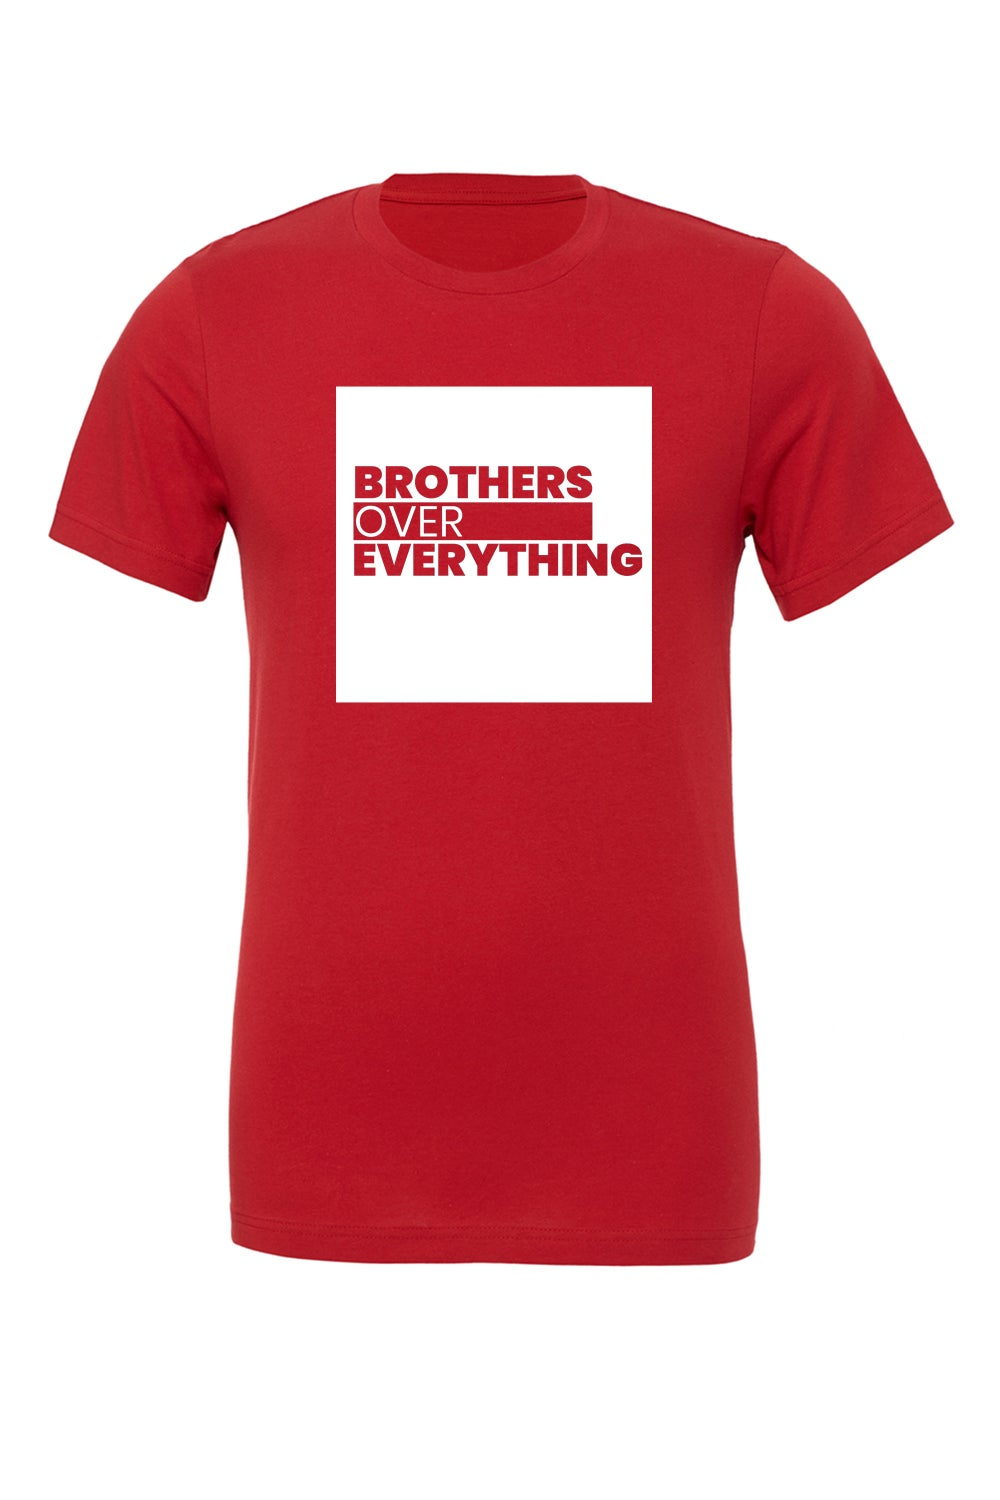 Image of Brothers Over Everything Tee (Pre Sale)